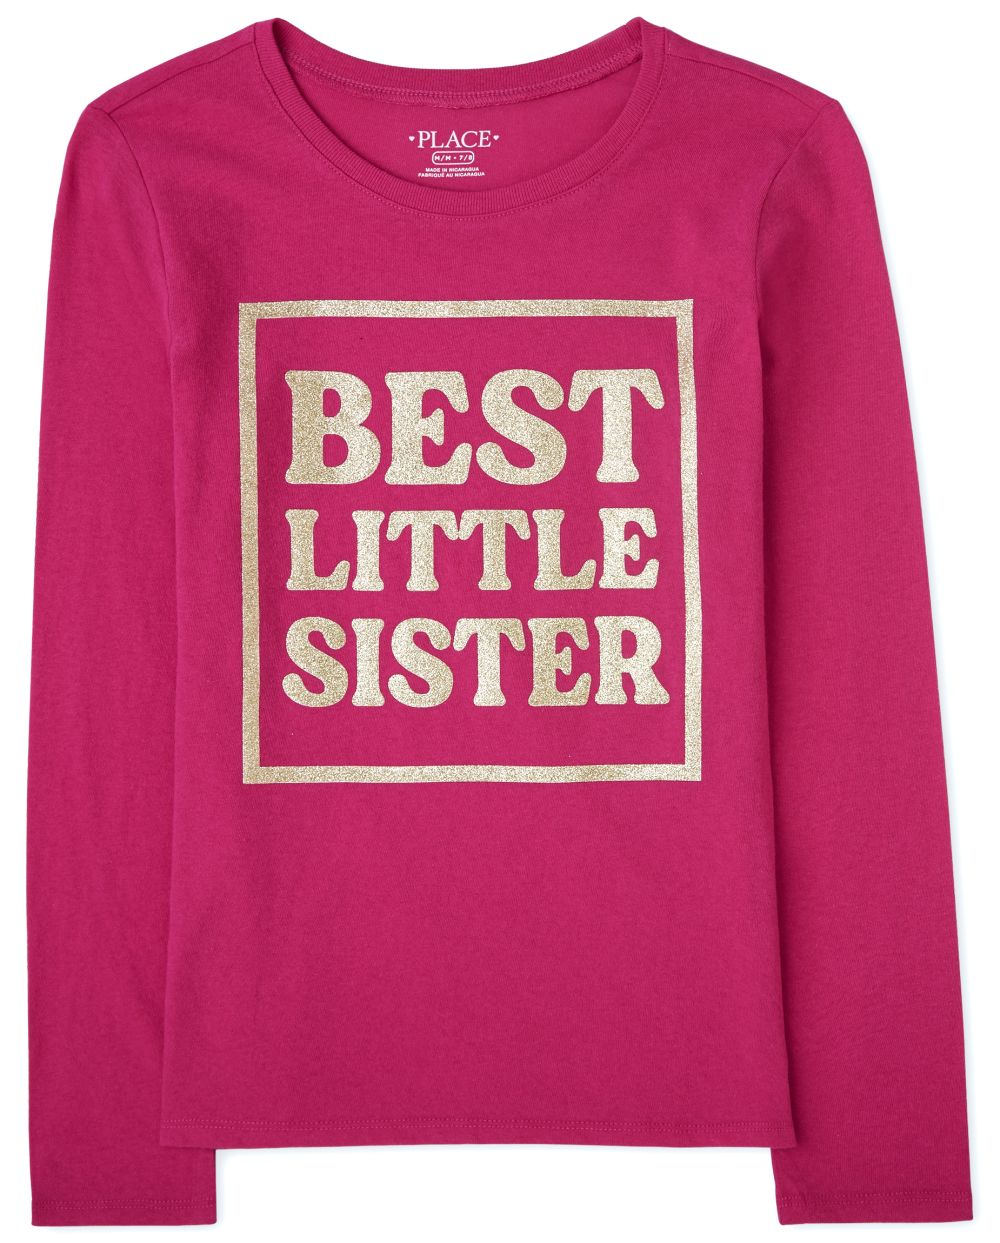 Girls Little Sister Graphic Tee